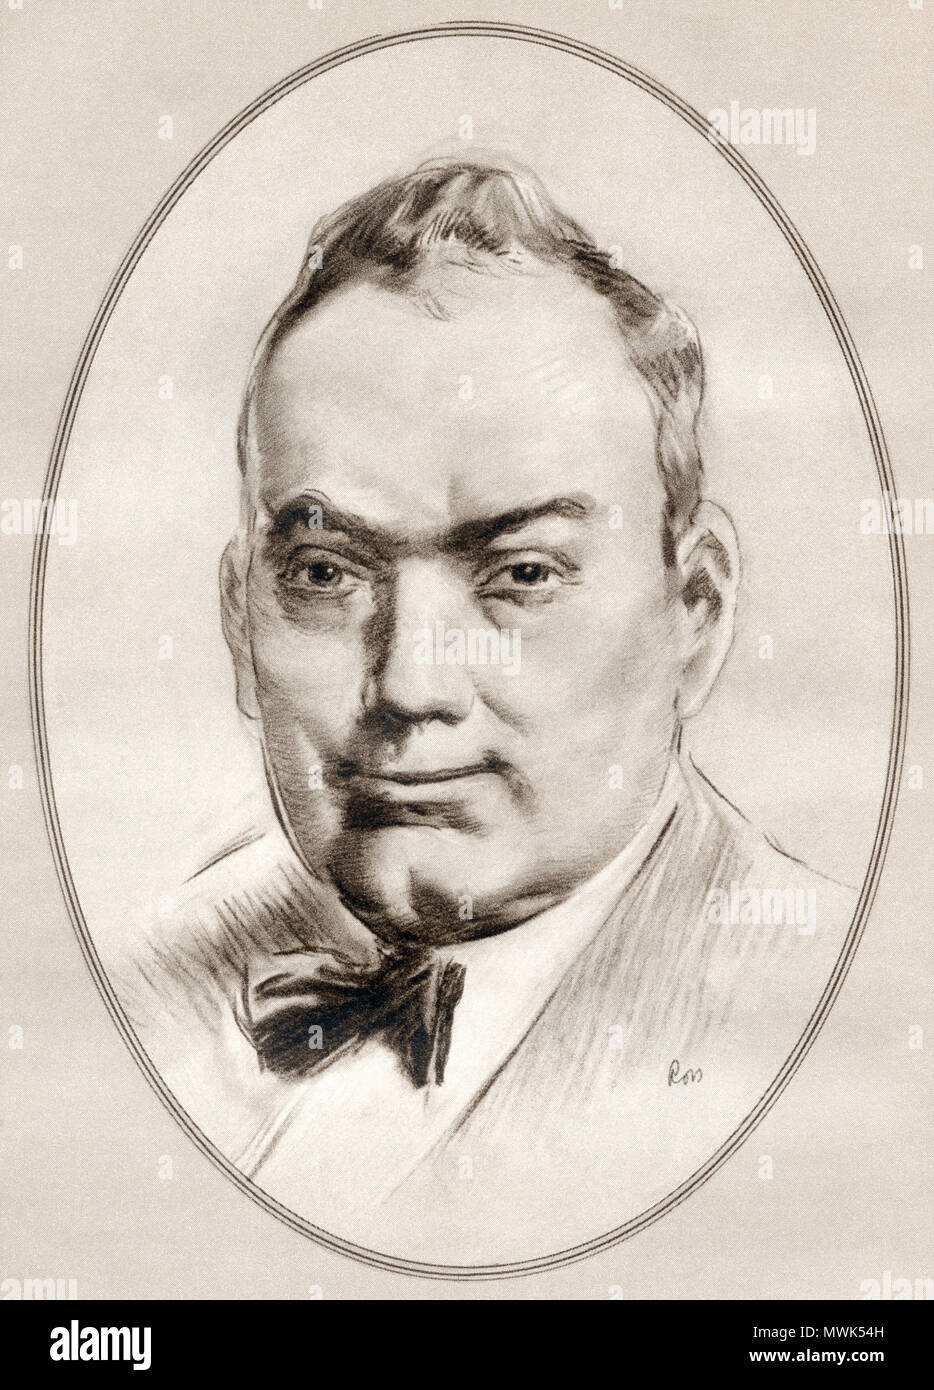 Enrico Caruso, 1873 –  1921.  Italian operatic tenor.  Illustration by Gordon Ross, American artist and illustrator (1873-1946), from Living Biographies of Famous Men. Stock Photo